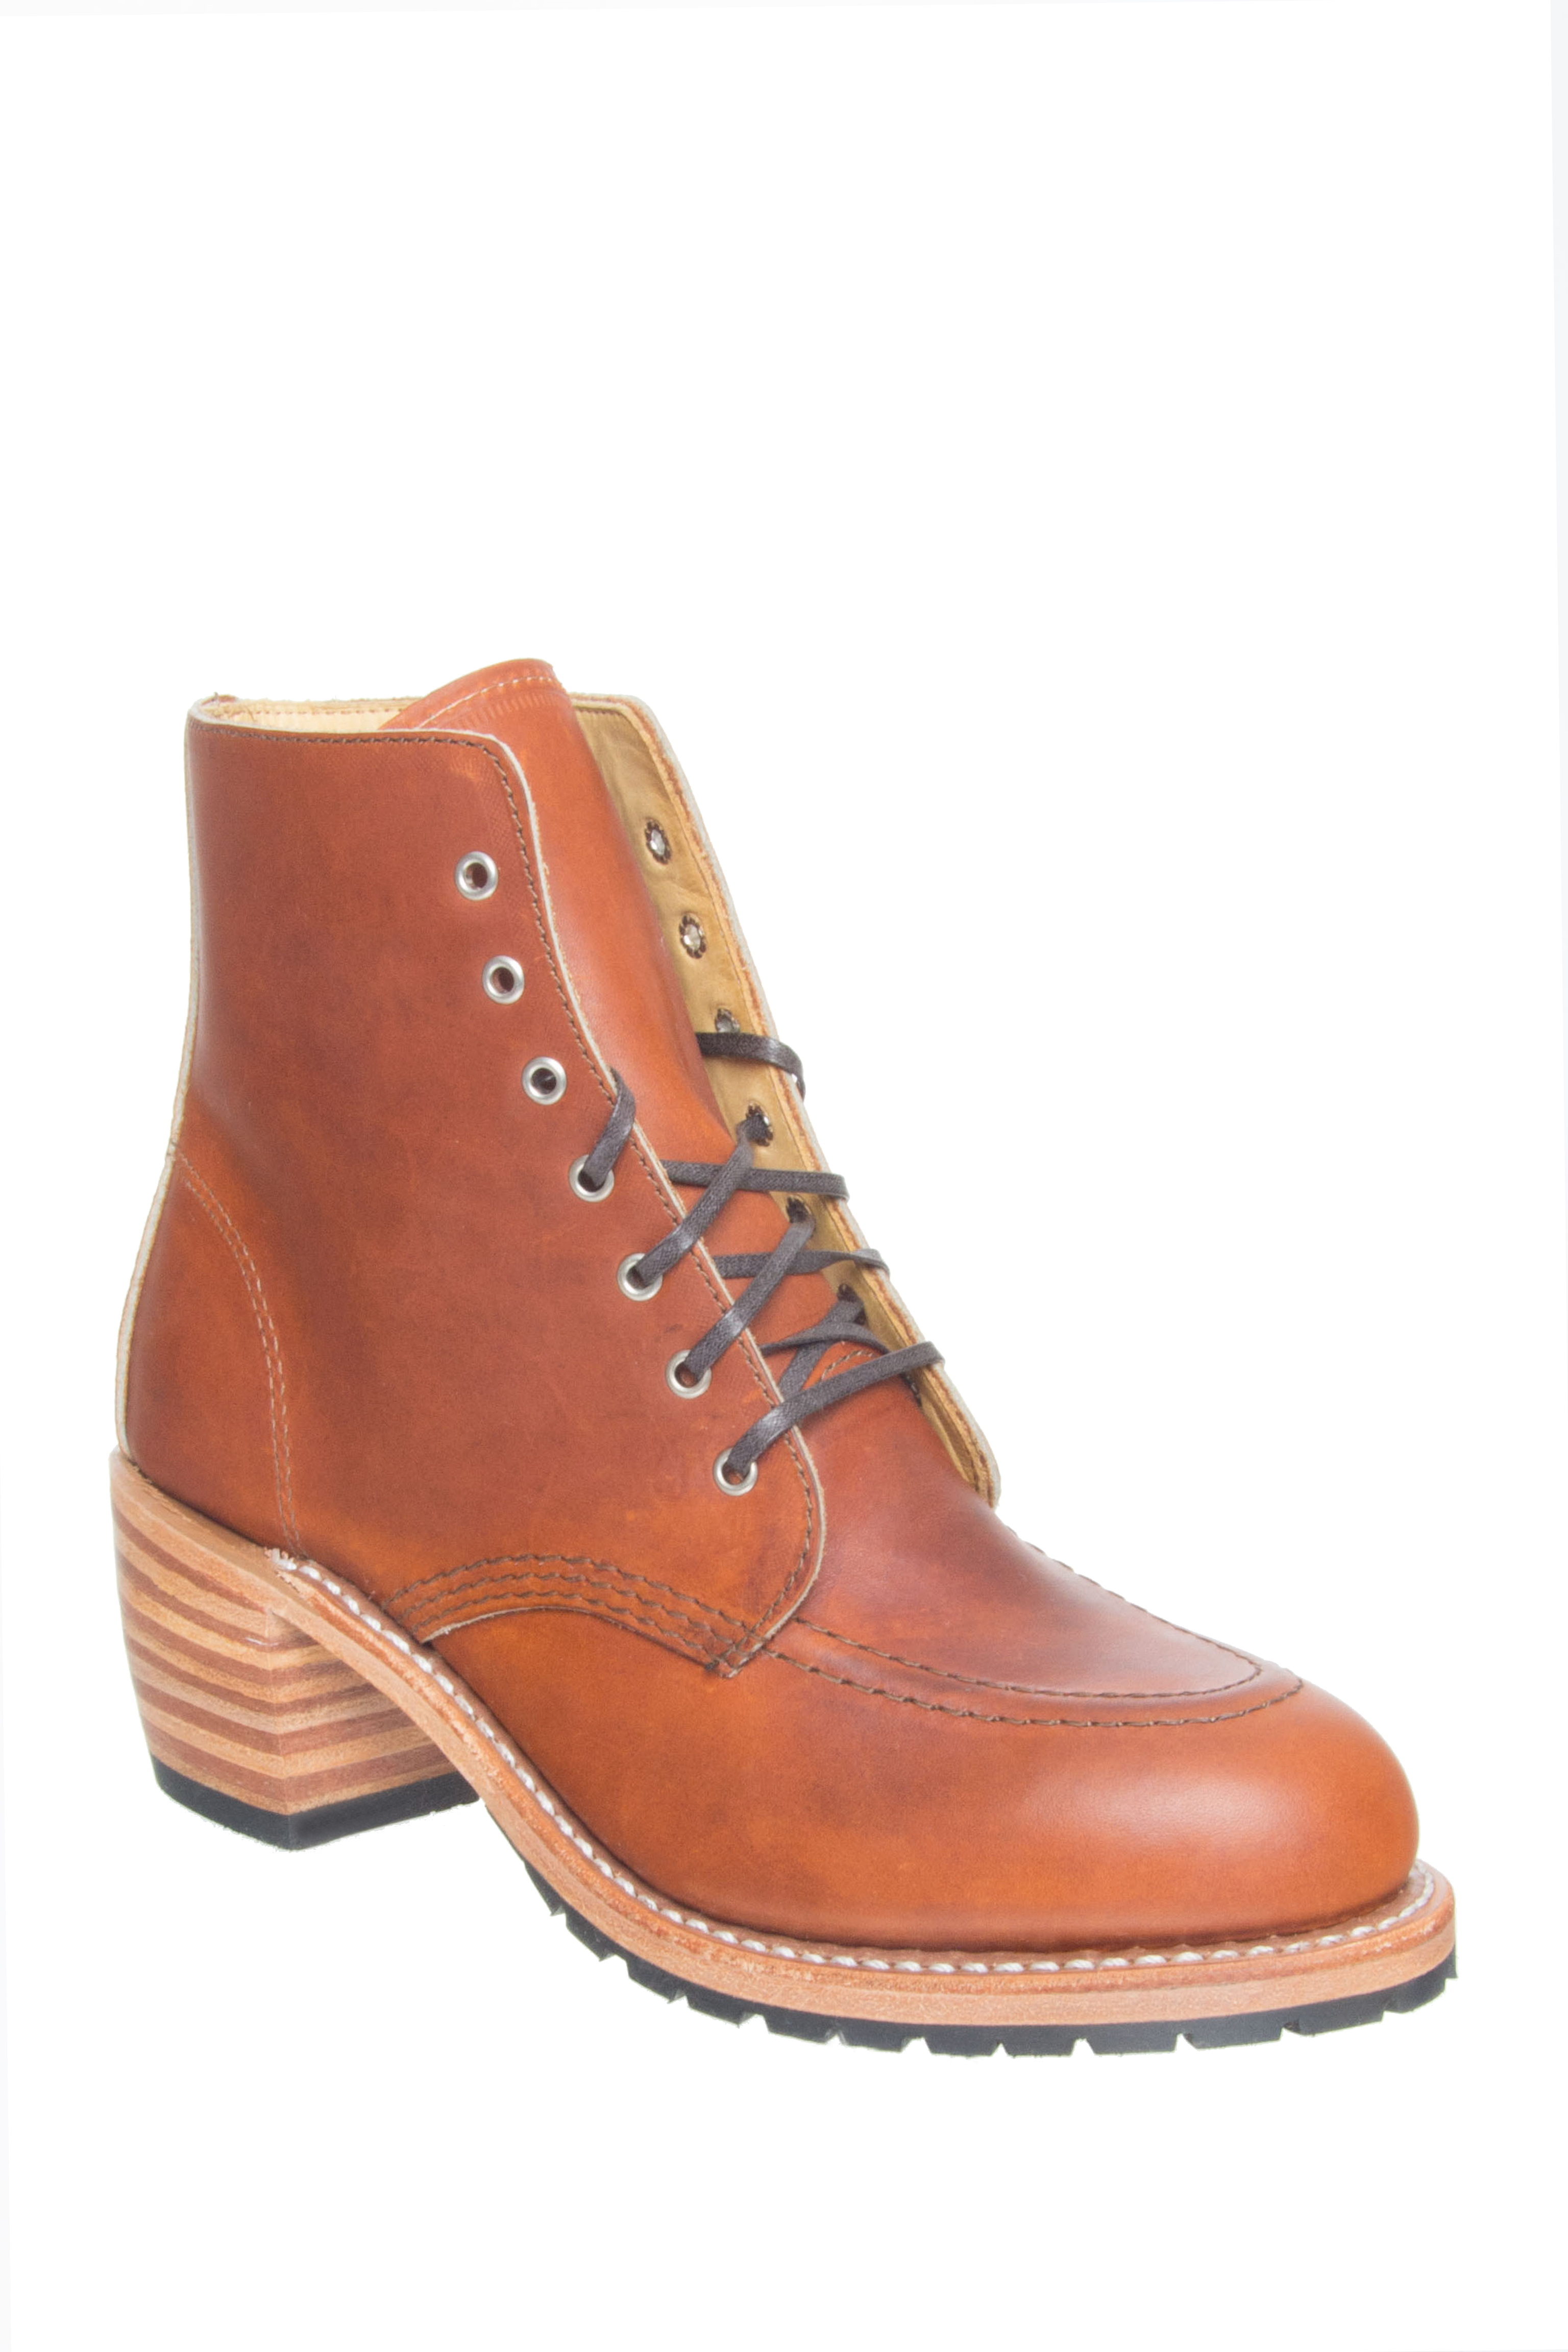 Red Wing Clara Mid Heel Boots - Oro